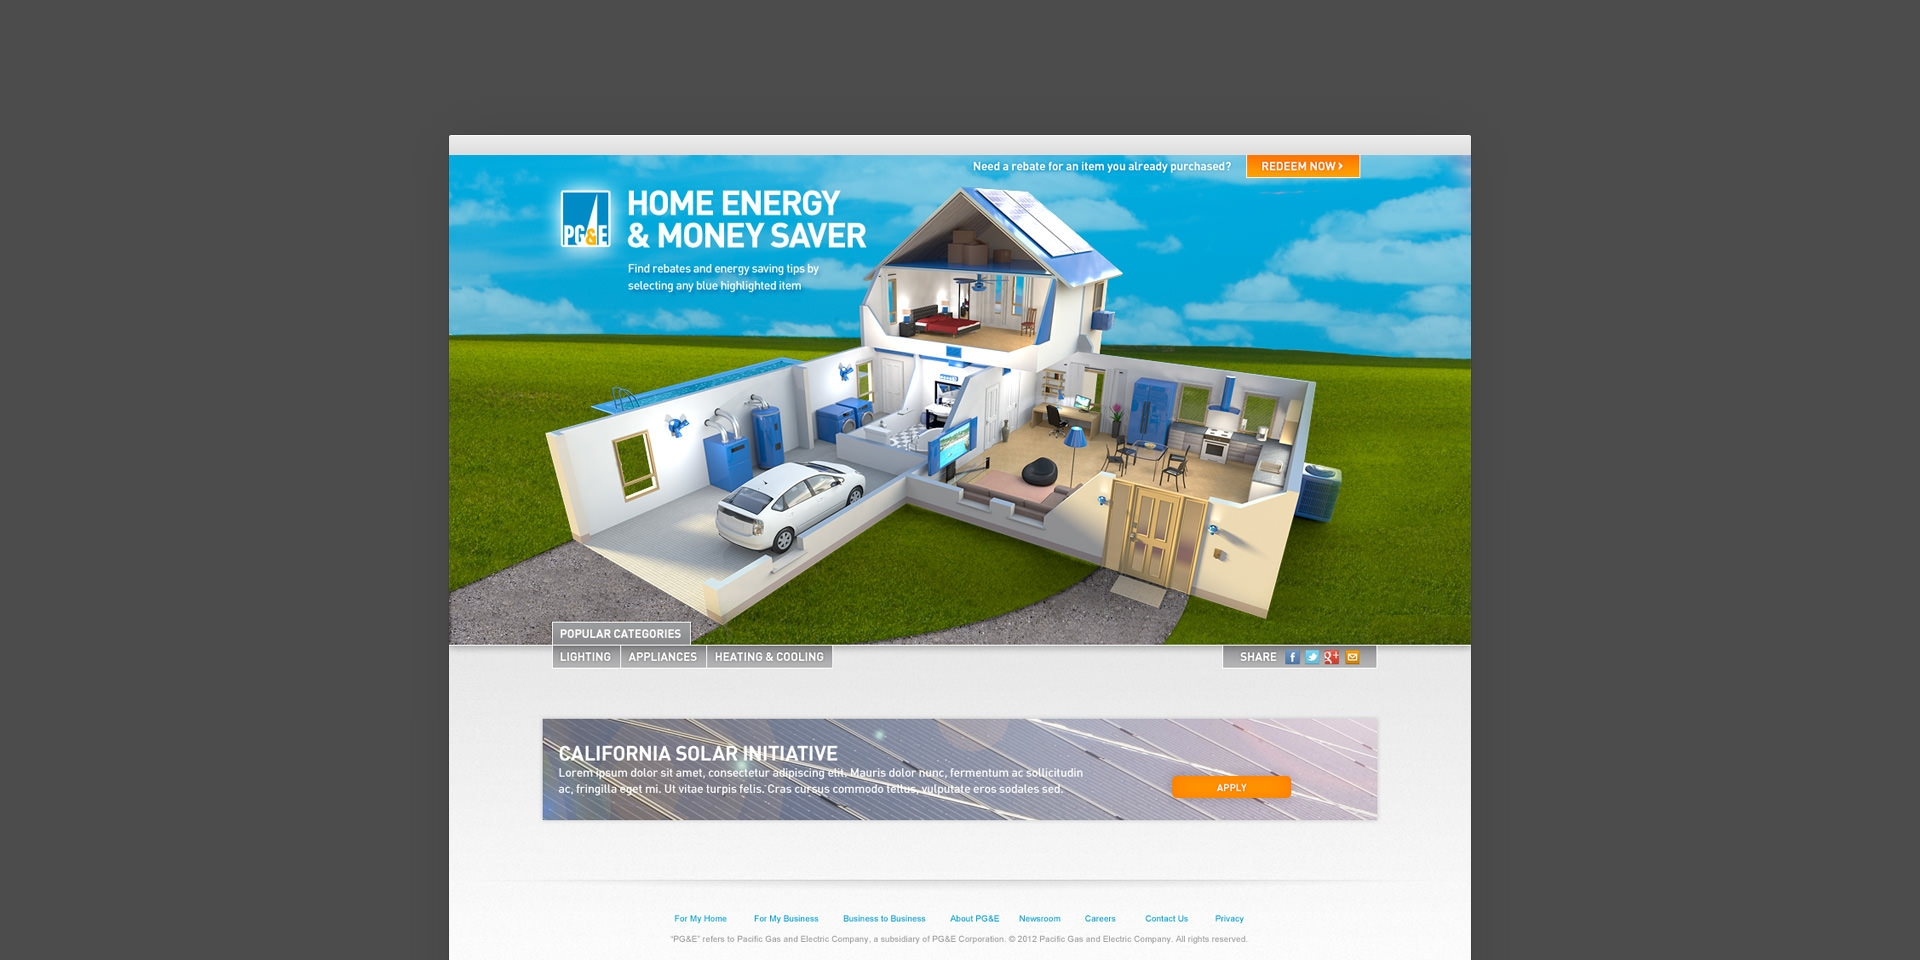 The PGu0026E Home Money Saver Was Designed To Inform Customers Ways They Can  Find Rebates And Energy Savings Tips Around Their Home.